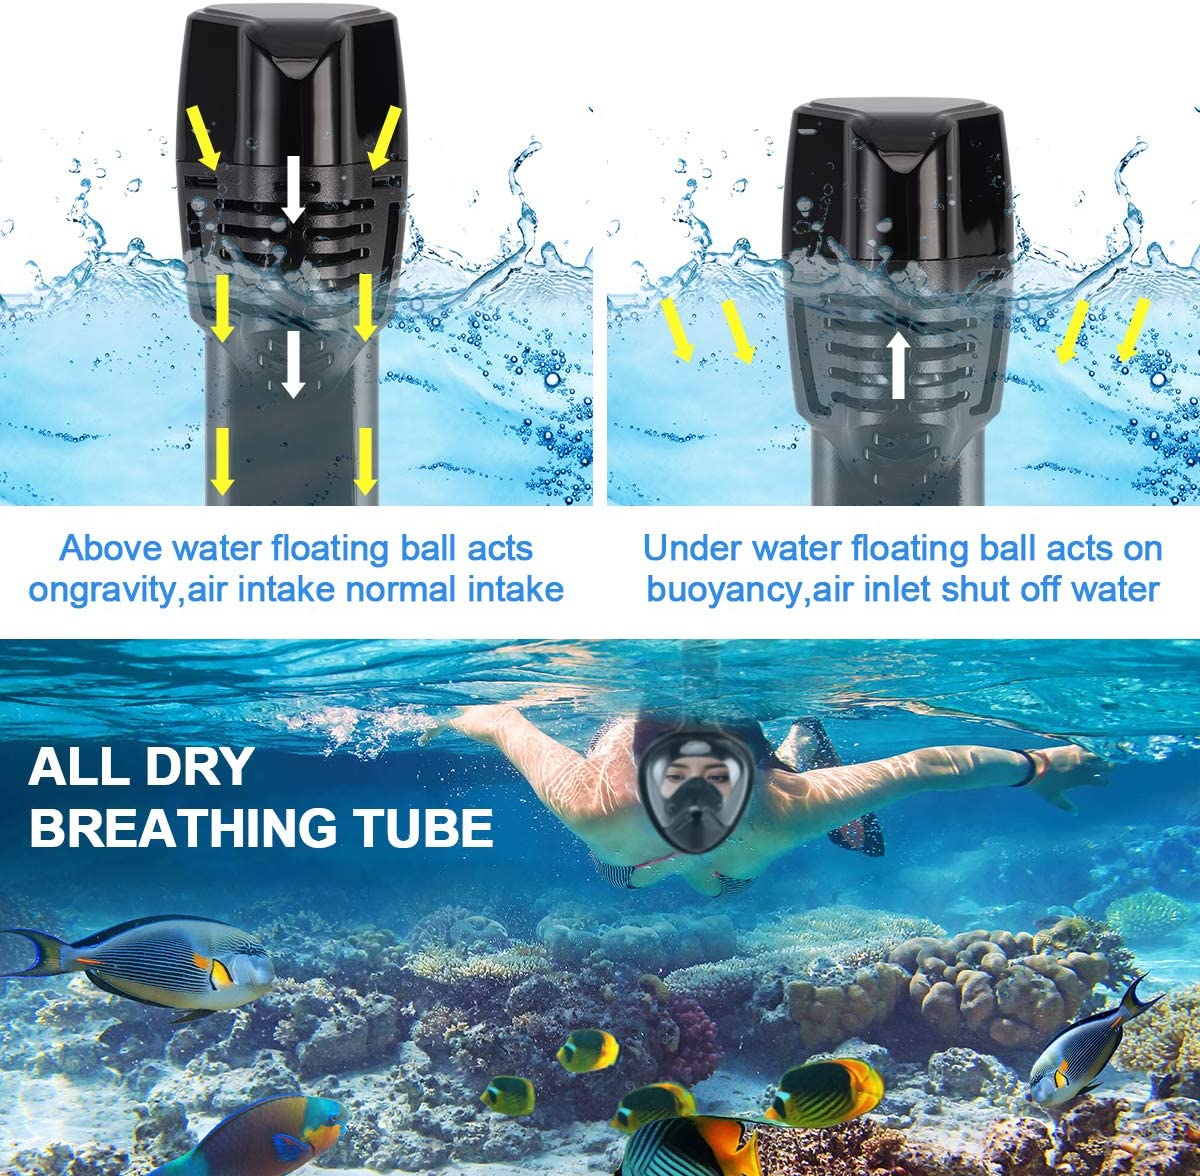 Mixi Snorkel Mask Full Face Snorkeling Mask with Detachable Camera Mount for Adult Upgraded Anti Fog /& Anti Leak Diving Mask 180 Degree Panoramic View Swimming Mask